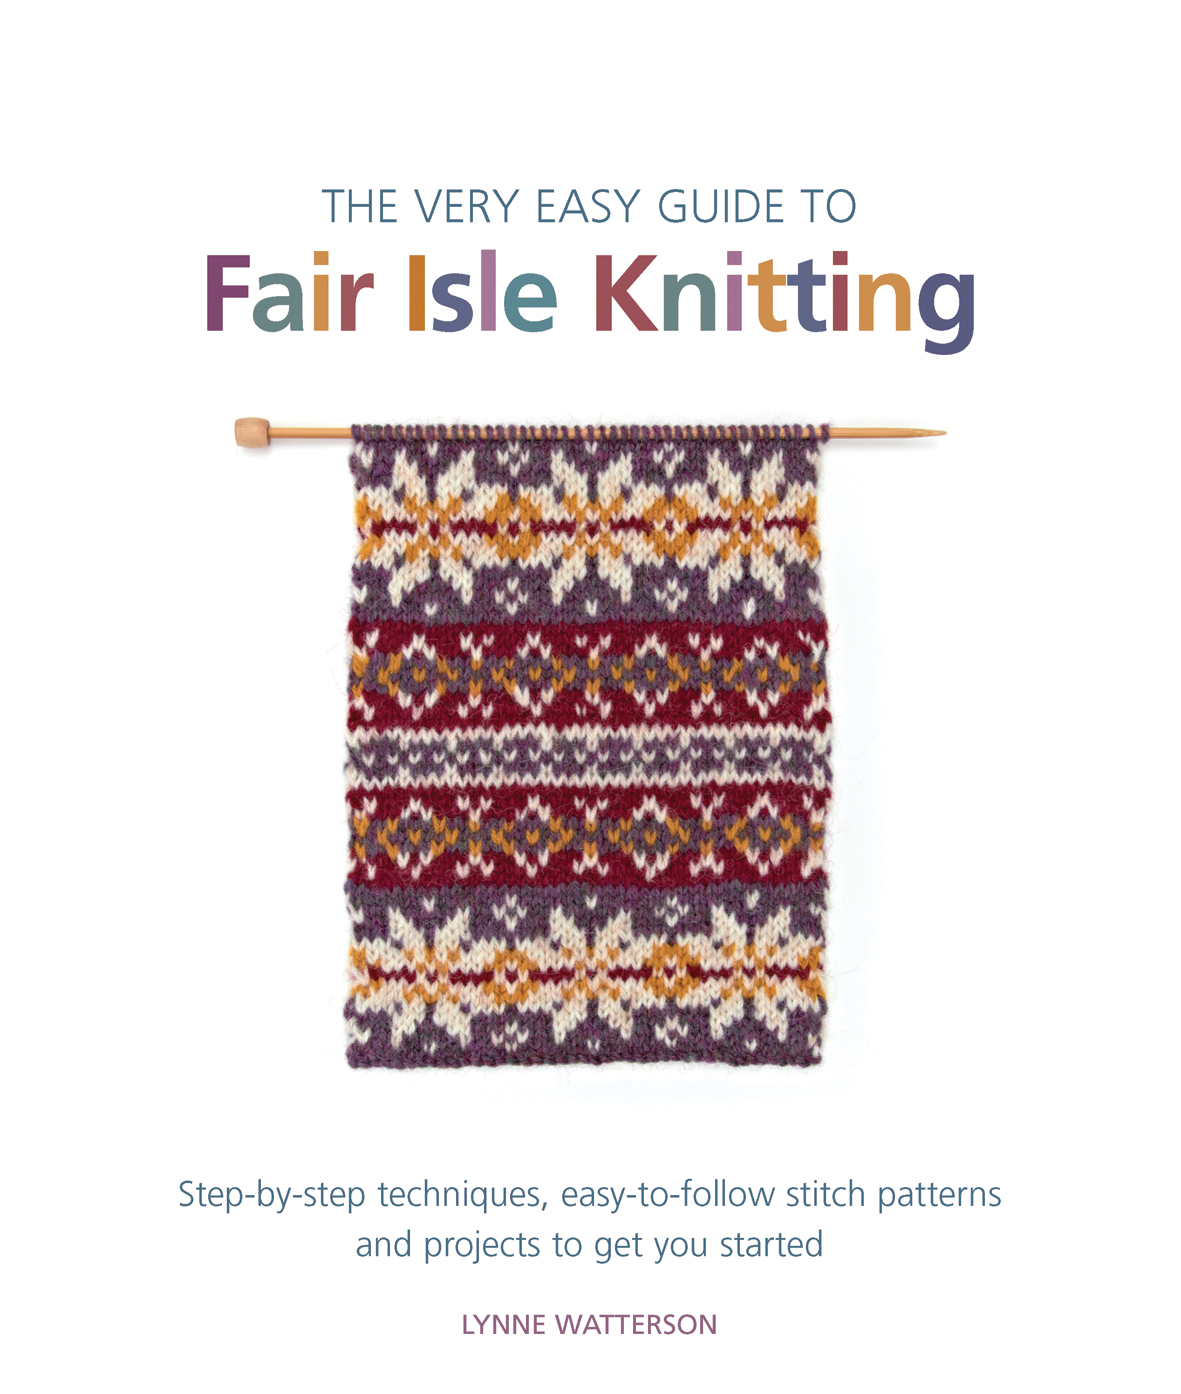 Fair Isle Knitting Books : Search press the very easy guide to fair isle knitting